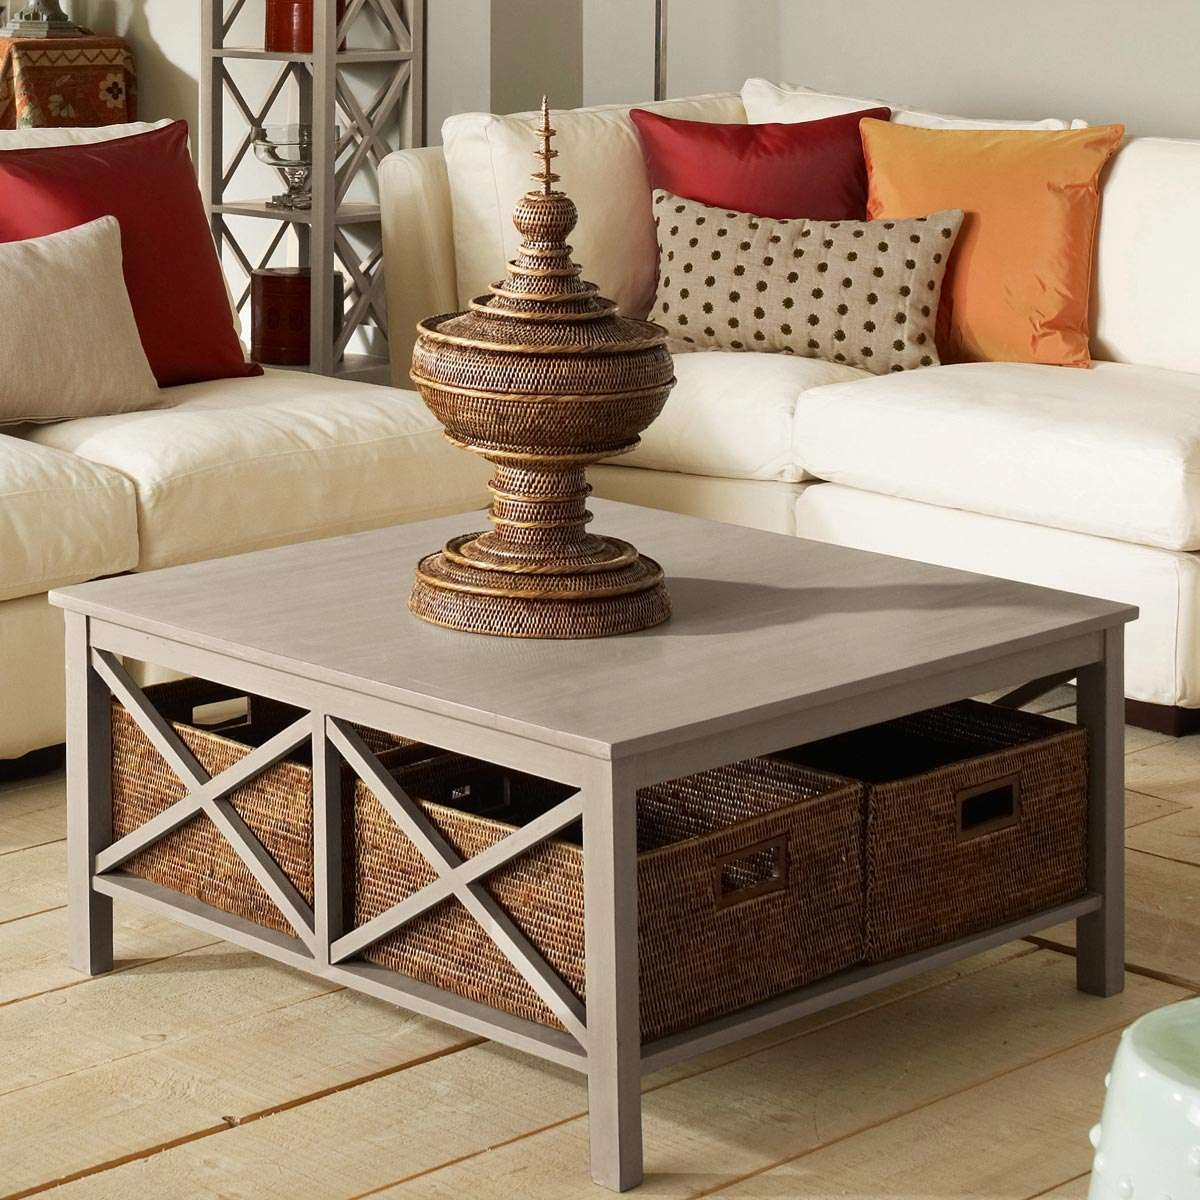 Ingenious Ways You Can Do With Coffee Table With Storage Baskets Inside Well Known Coffee Tables With Baskets Underneath (View 11 of 20)